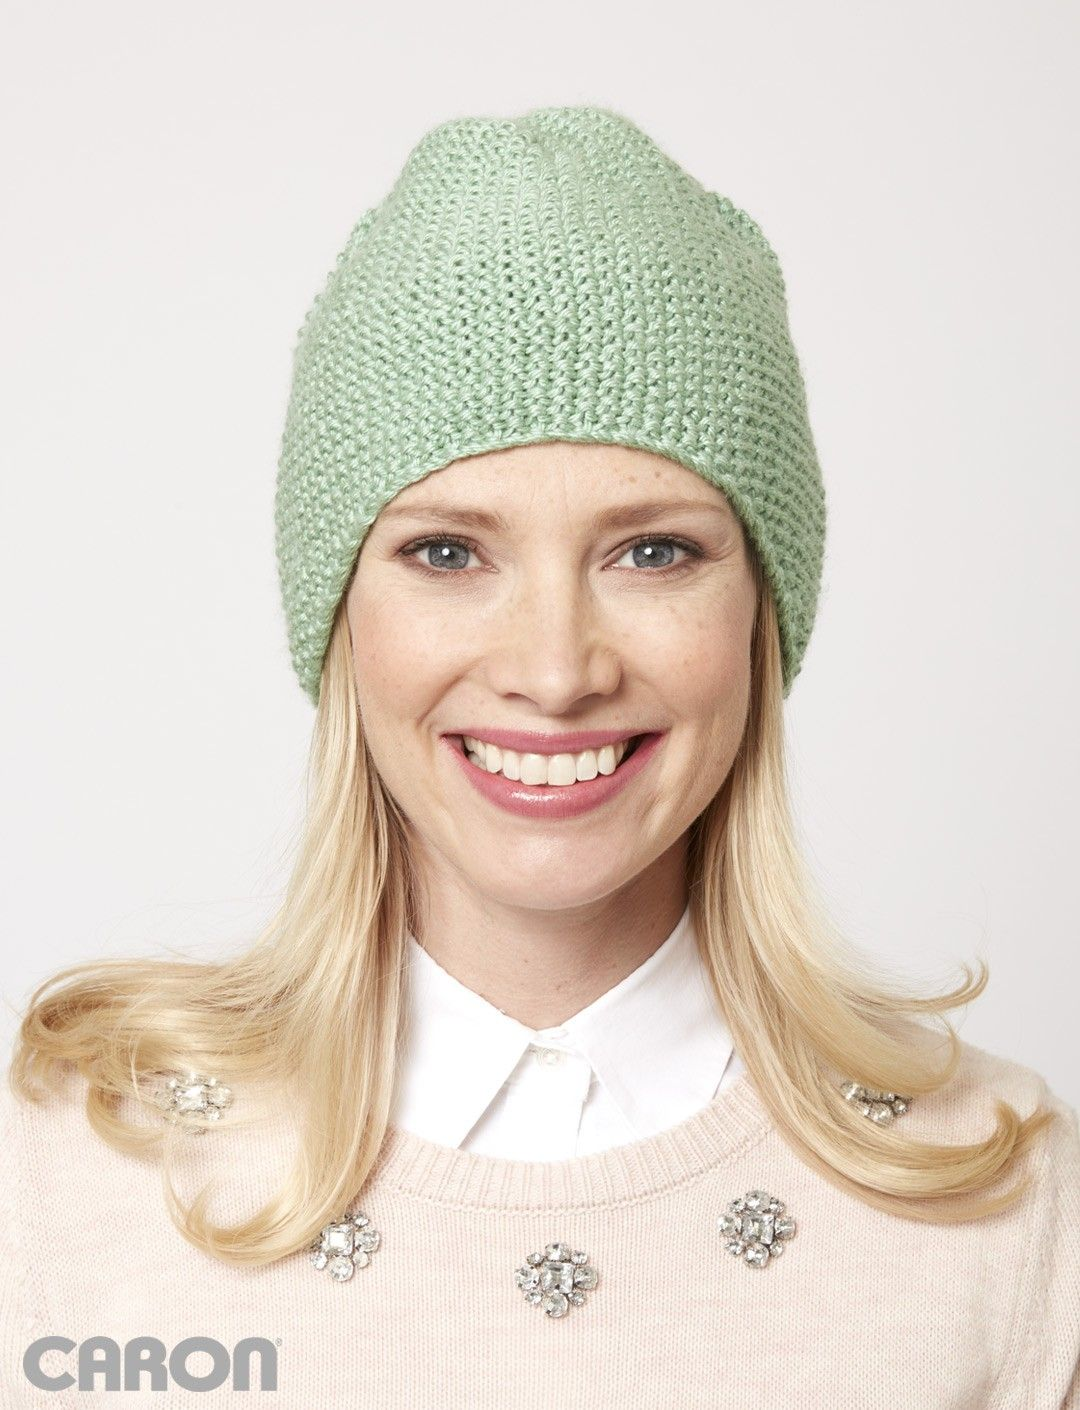 Seed stitch beanie patterns yarnspirations hobbies the soft and versatile spring meadow seed stitch beanie is the perfect topper for the unpredictable days of spring this beginner knitting pattern is ideal bankloansurffo Images